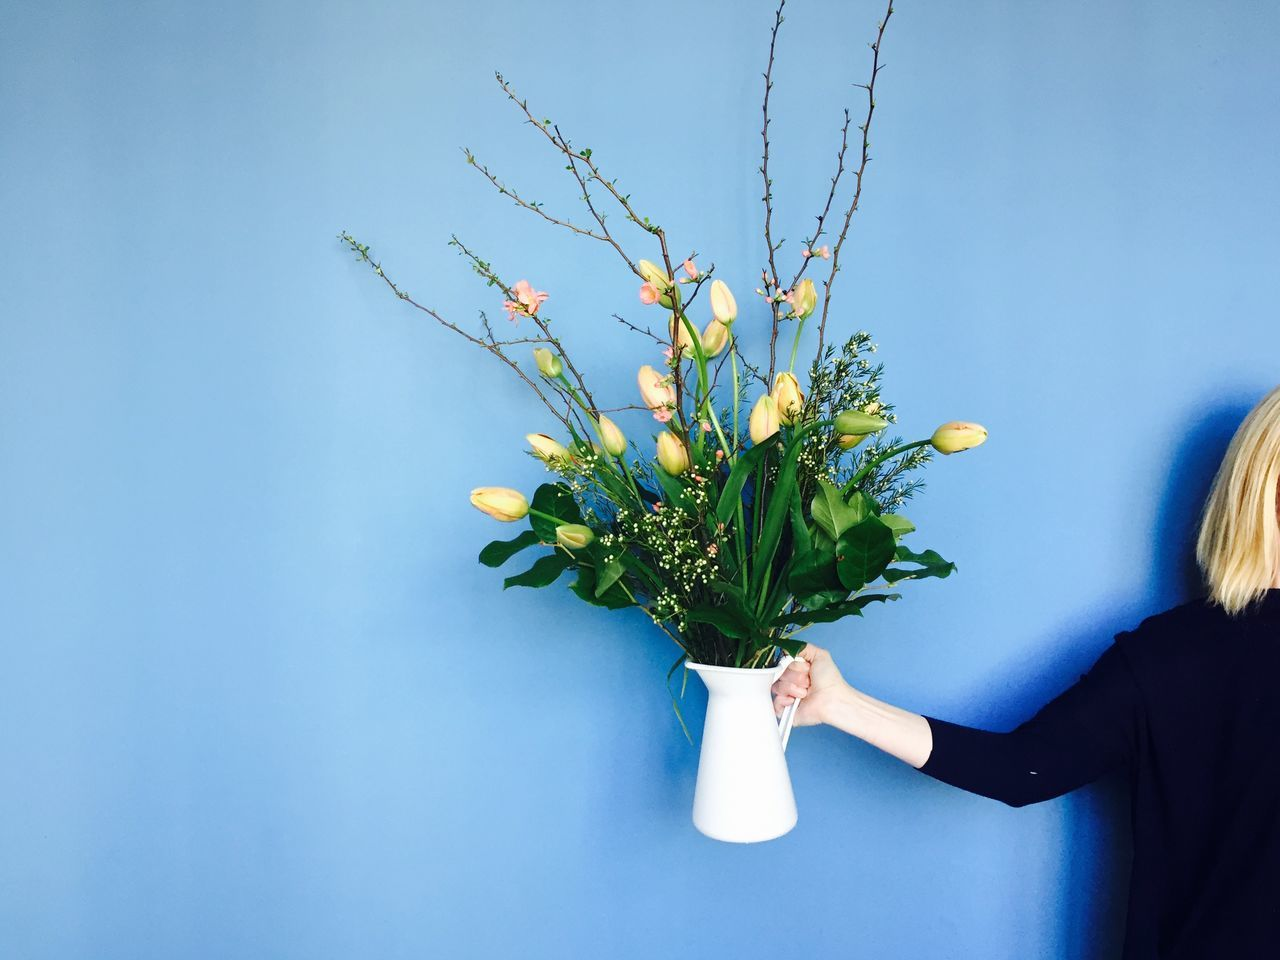 Adult Adults Only Beauty In Nature Blue Bouquet Close-up Copy Space Day Flower Flower Arrangement Freshness Freshness Growth Holding Human Body Part Human Hand Nature One Person People Plant Real People Sky Spring Tulip Women